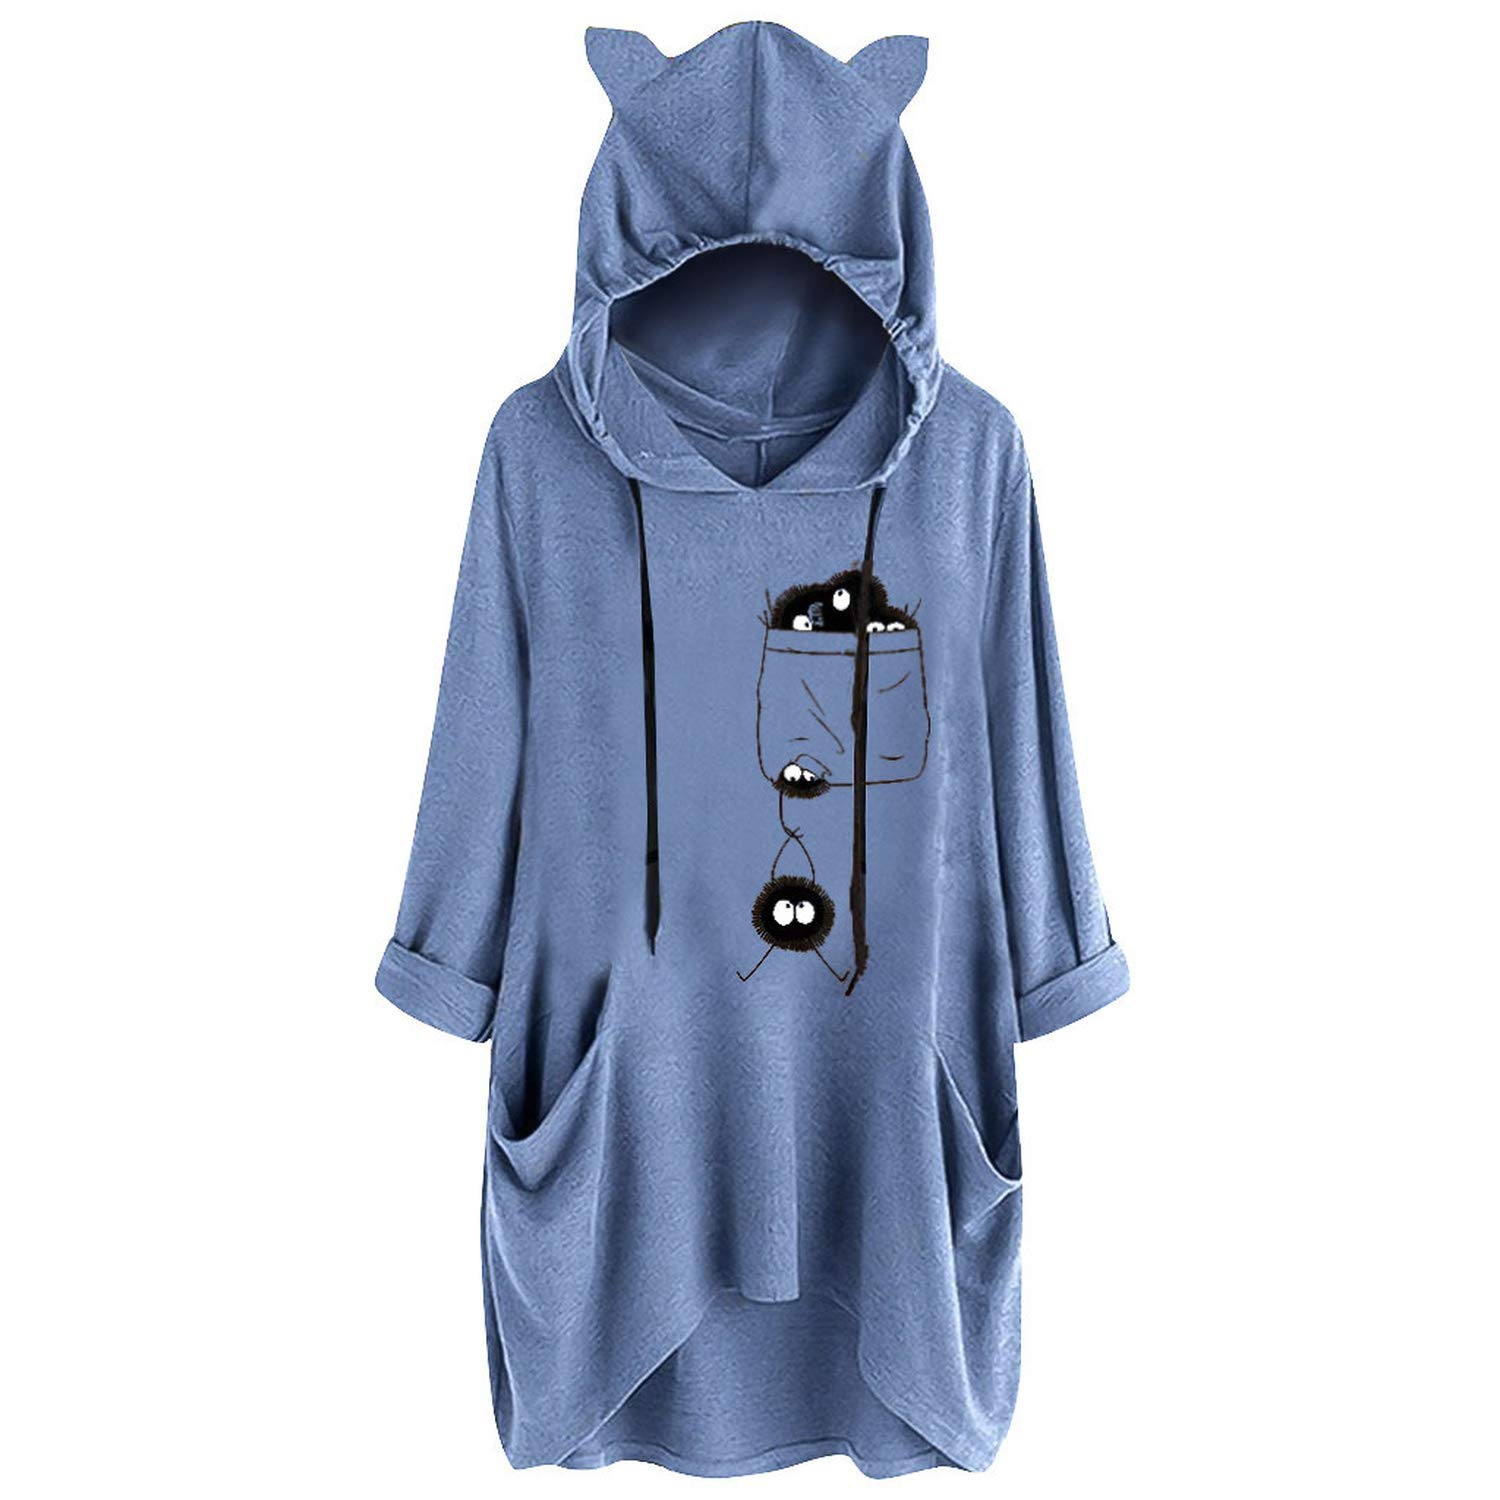 xiaoxiaoland Cat Ears Print Women Blouse Tops Hoodies Autumn Pullover Sweatshirt with Pockets Hoody Outwear Coats